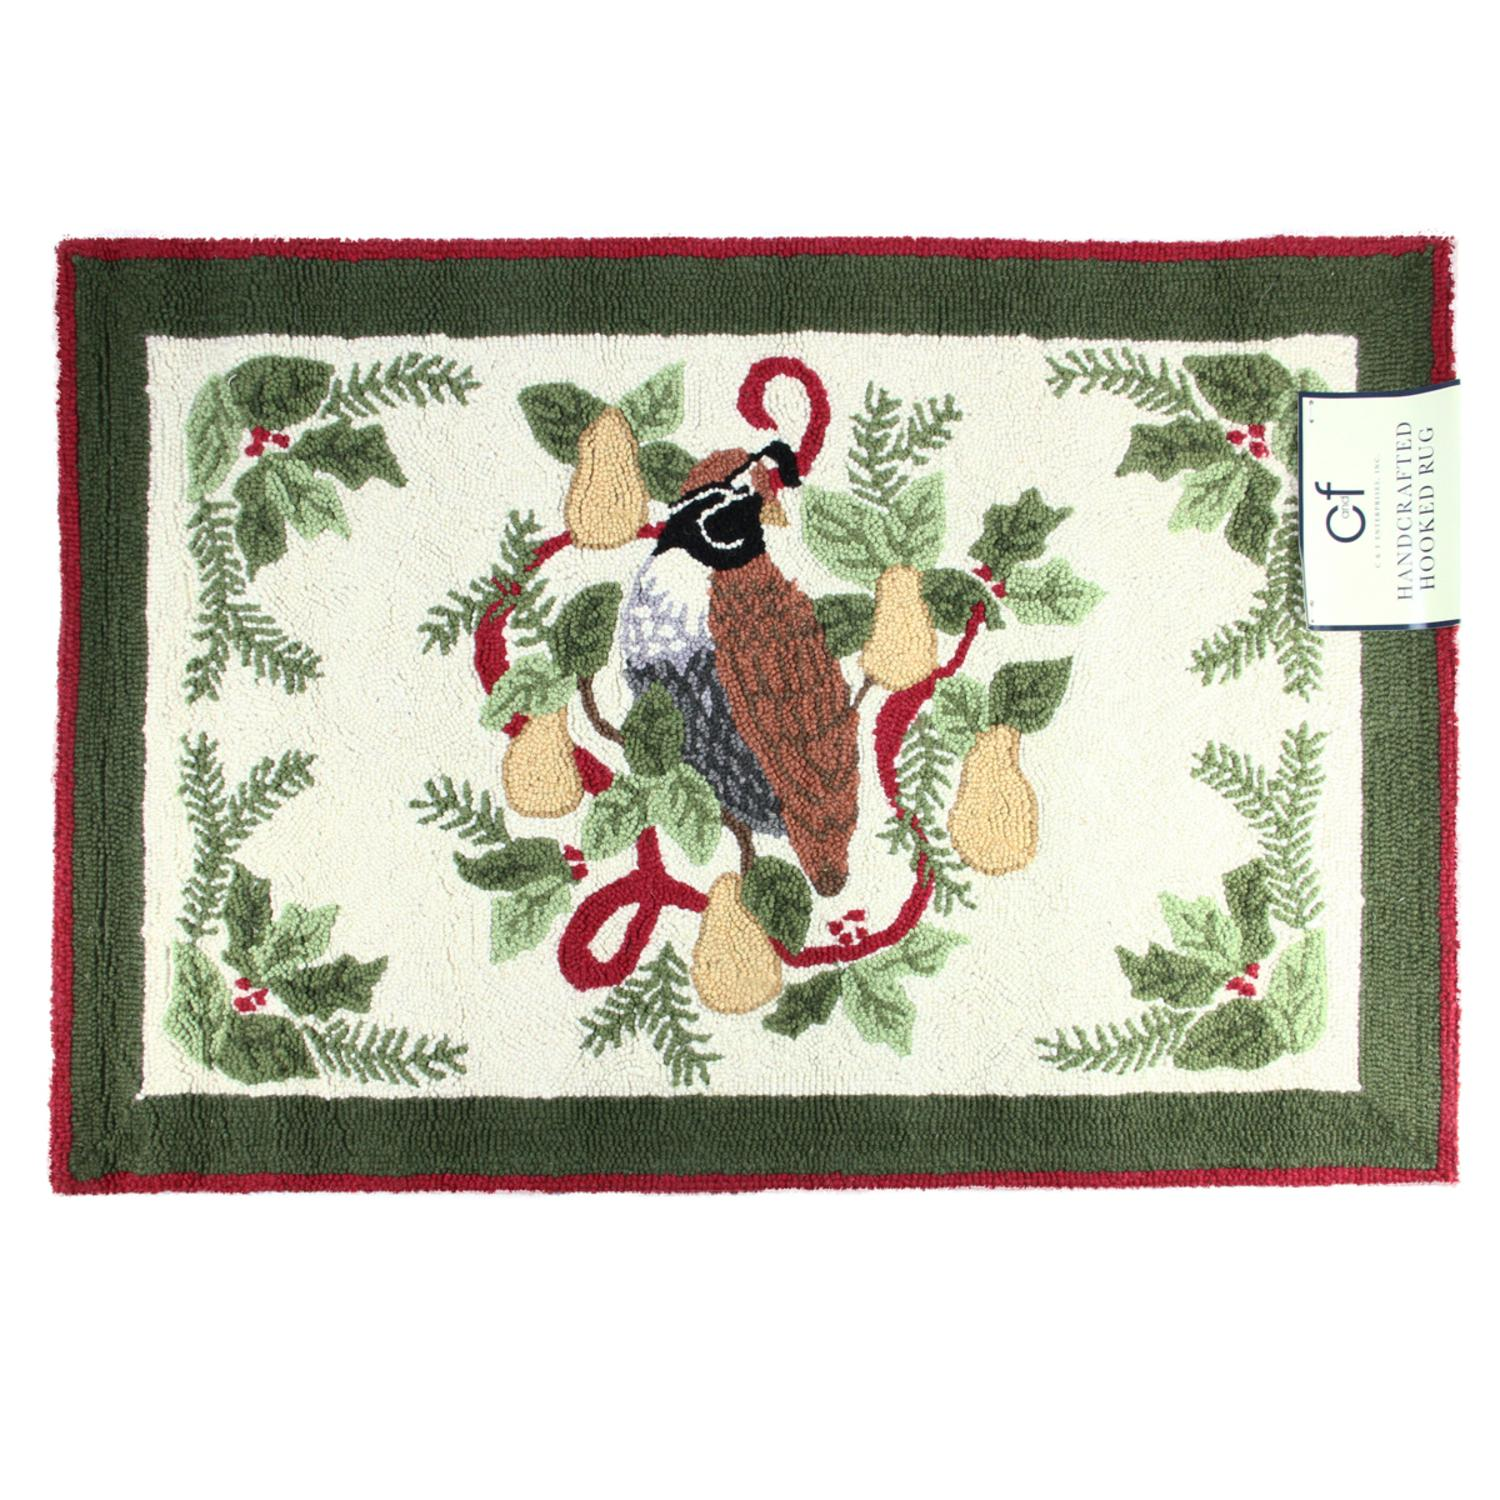 2' X 3' Decorative Partridge In A Pear Tree Christmas Throw Rug